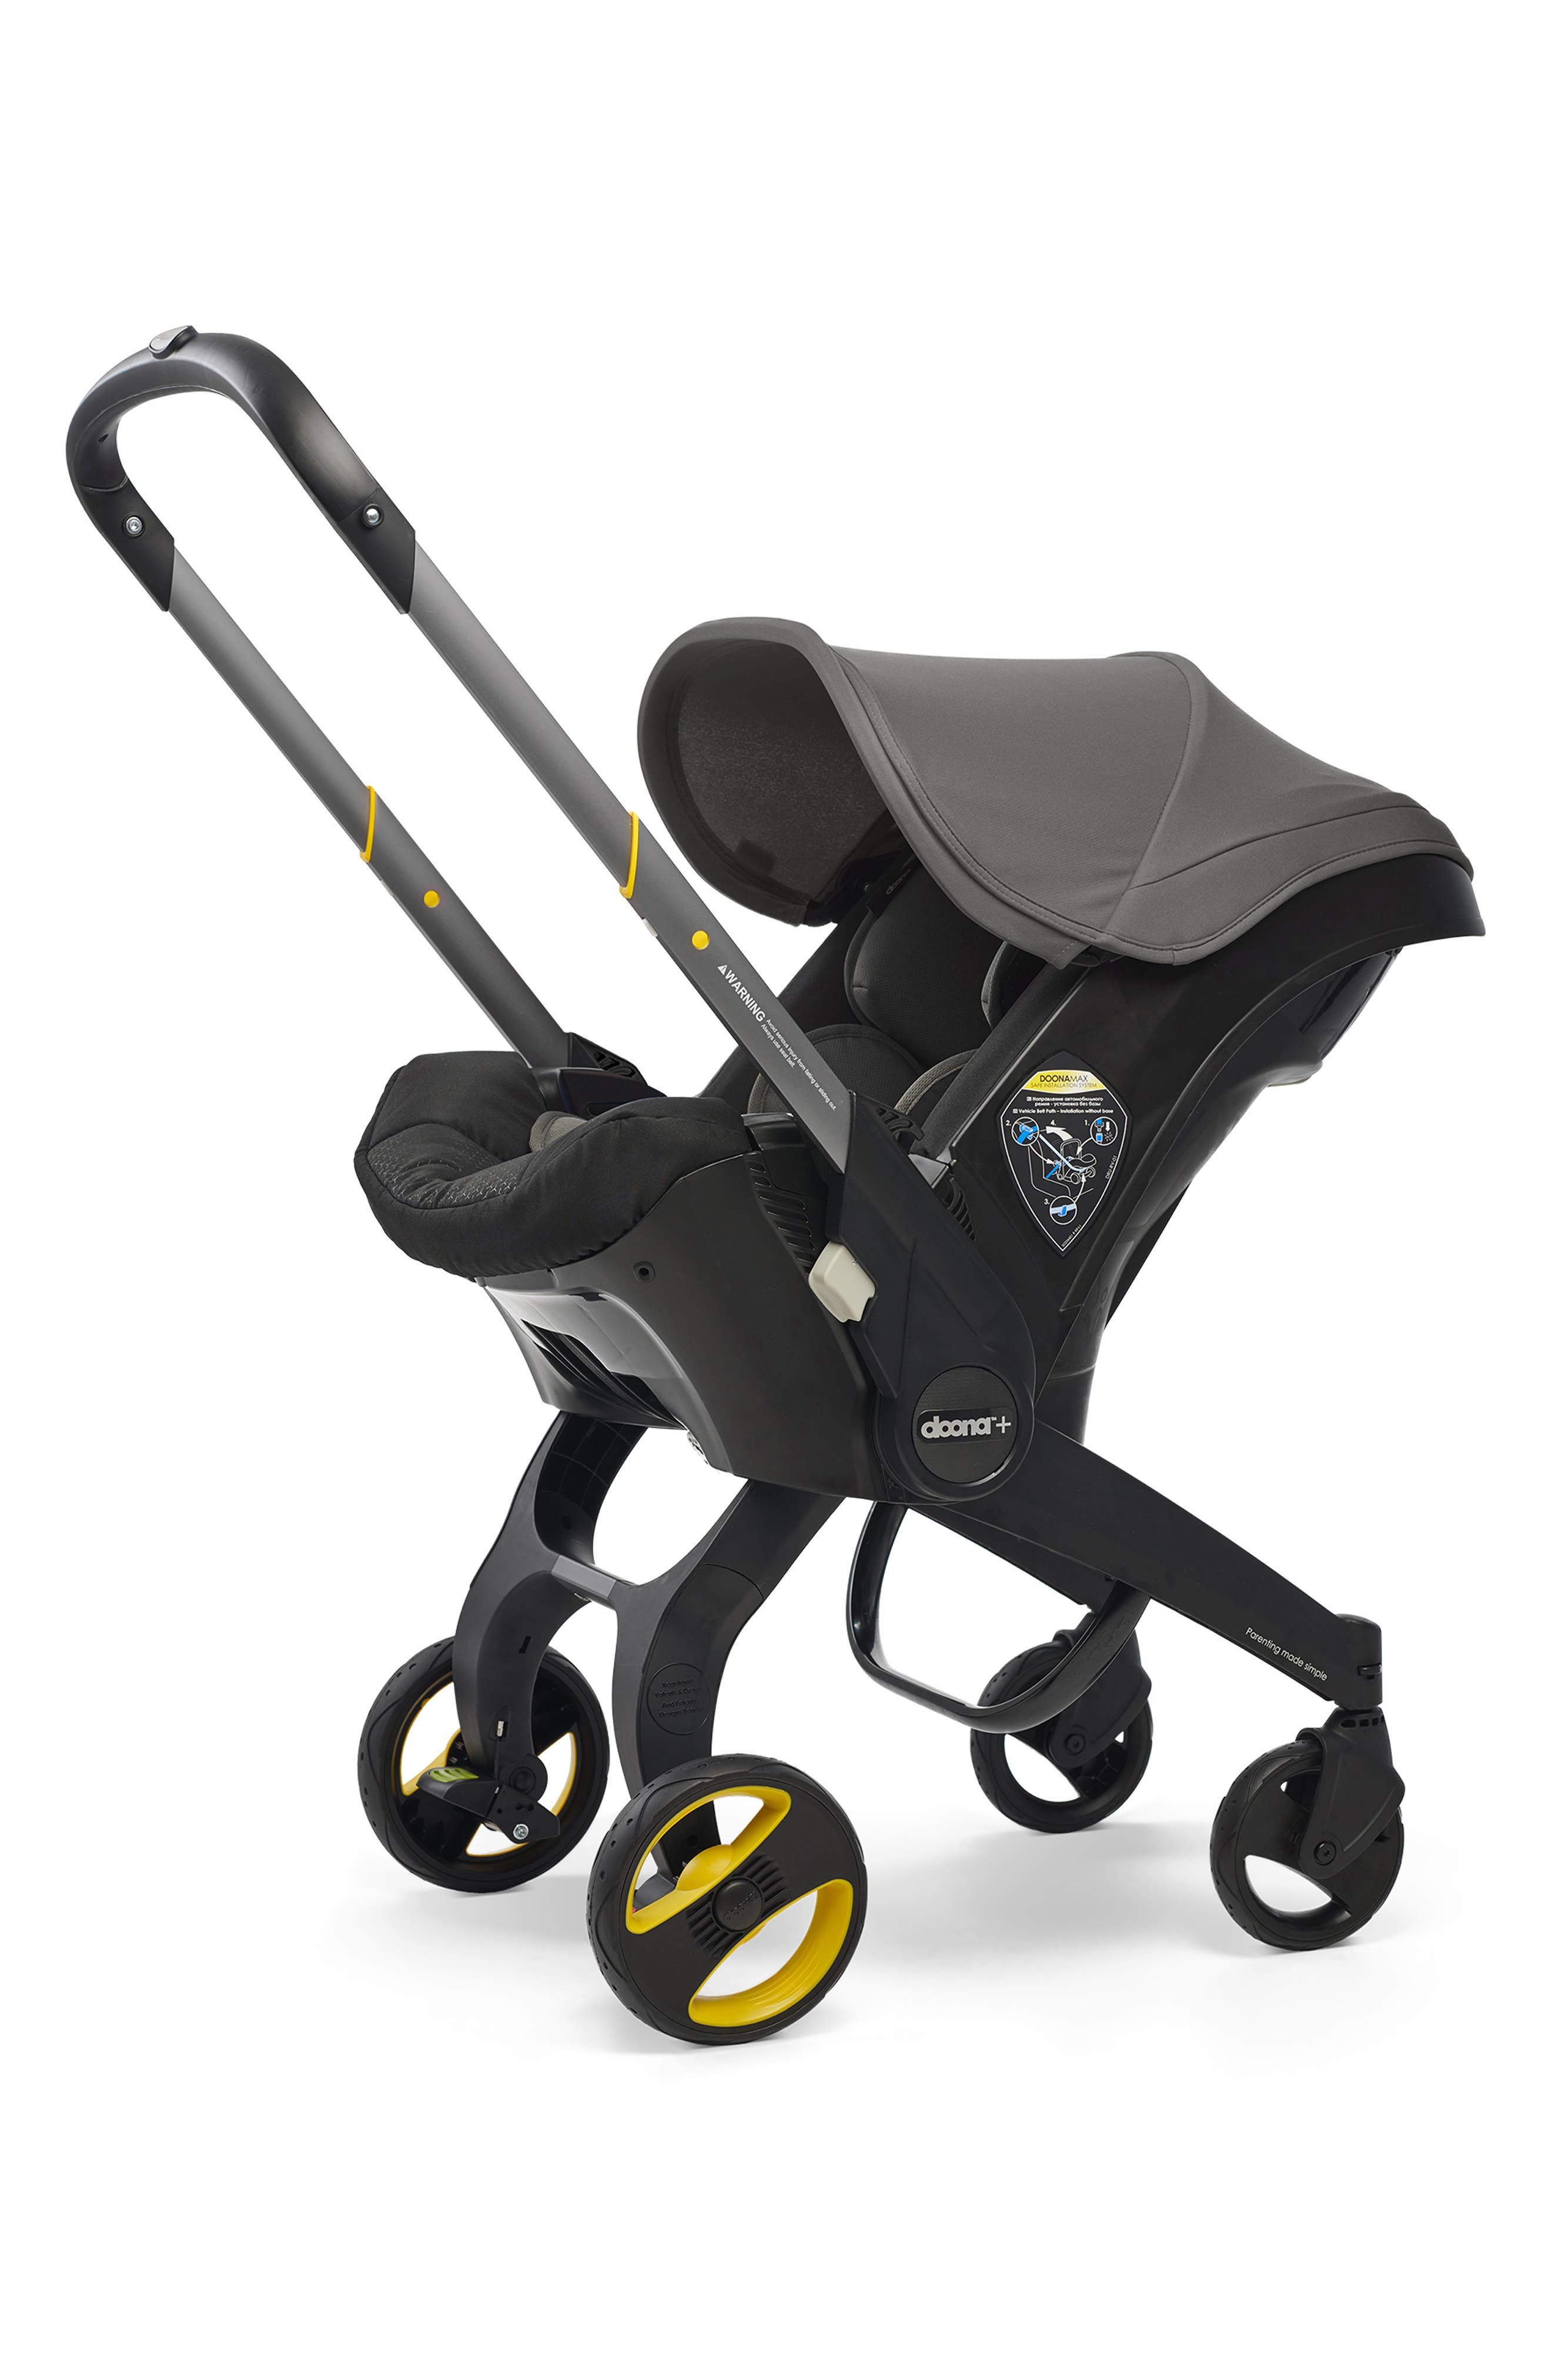 DOONA Convertible Infant Car Seat/Compact Stroller System with Base, Main, color, GREY HOUND